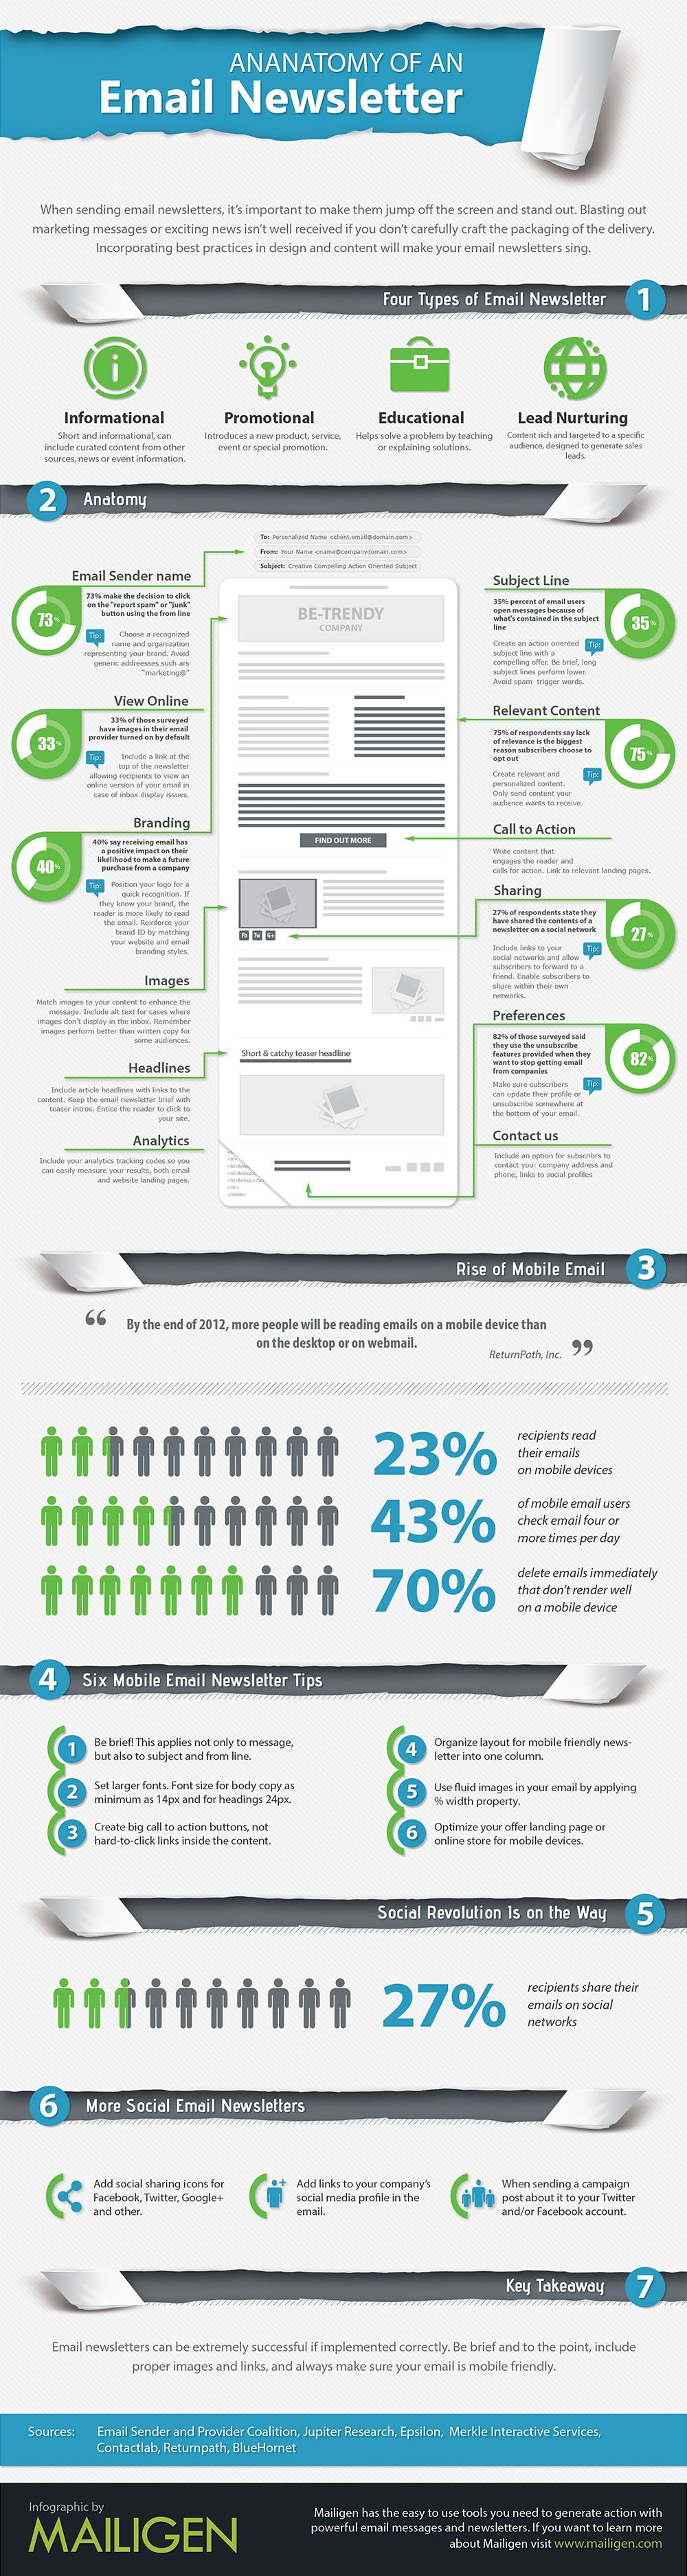 INFOGRAPHIC: THE ANATOMY OF AN EMAIL NEWSLETTER – IS YOUR EMAIL ...